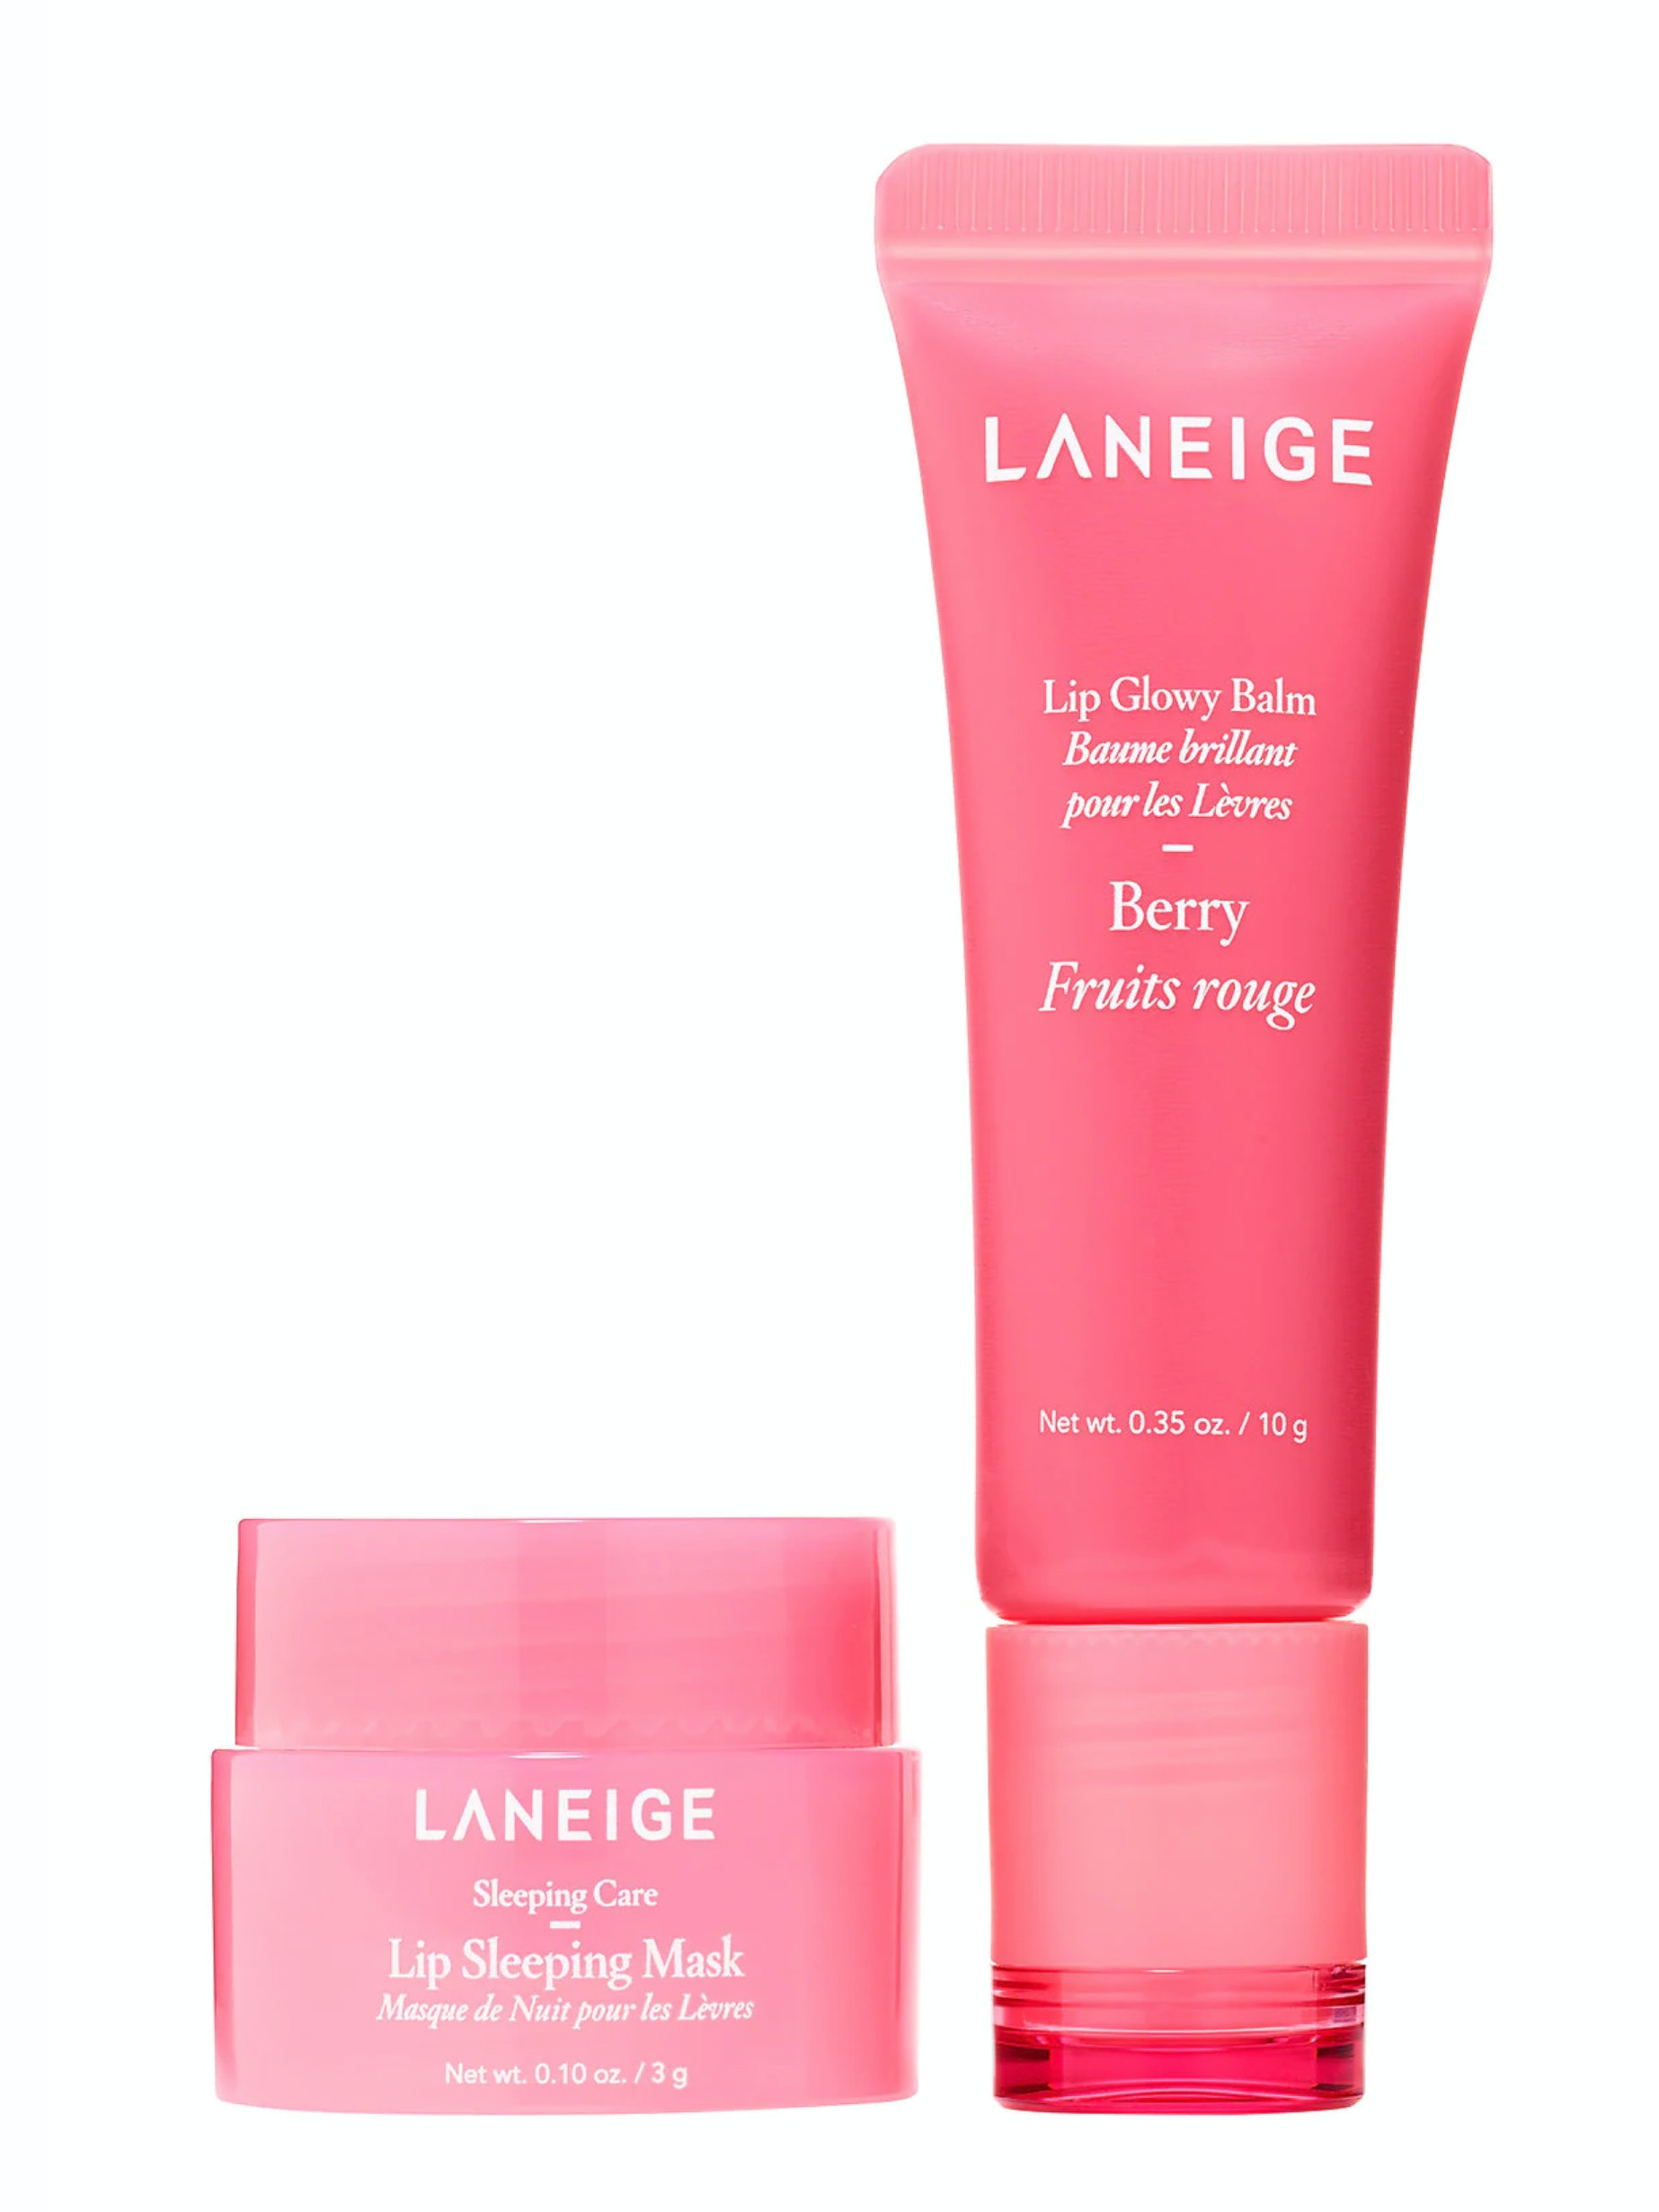 LANEIGE Kiss Me Day and Night Lip Sleeping Mask